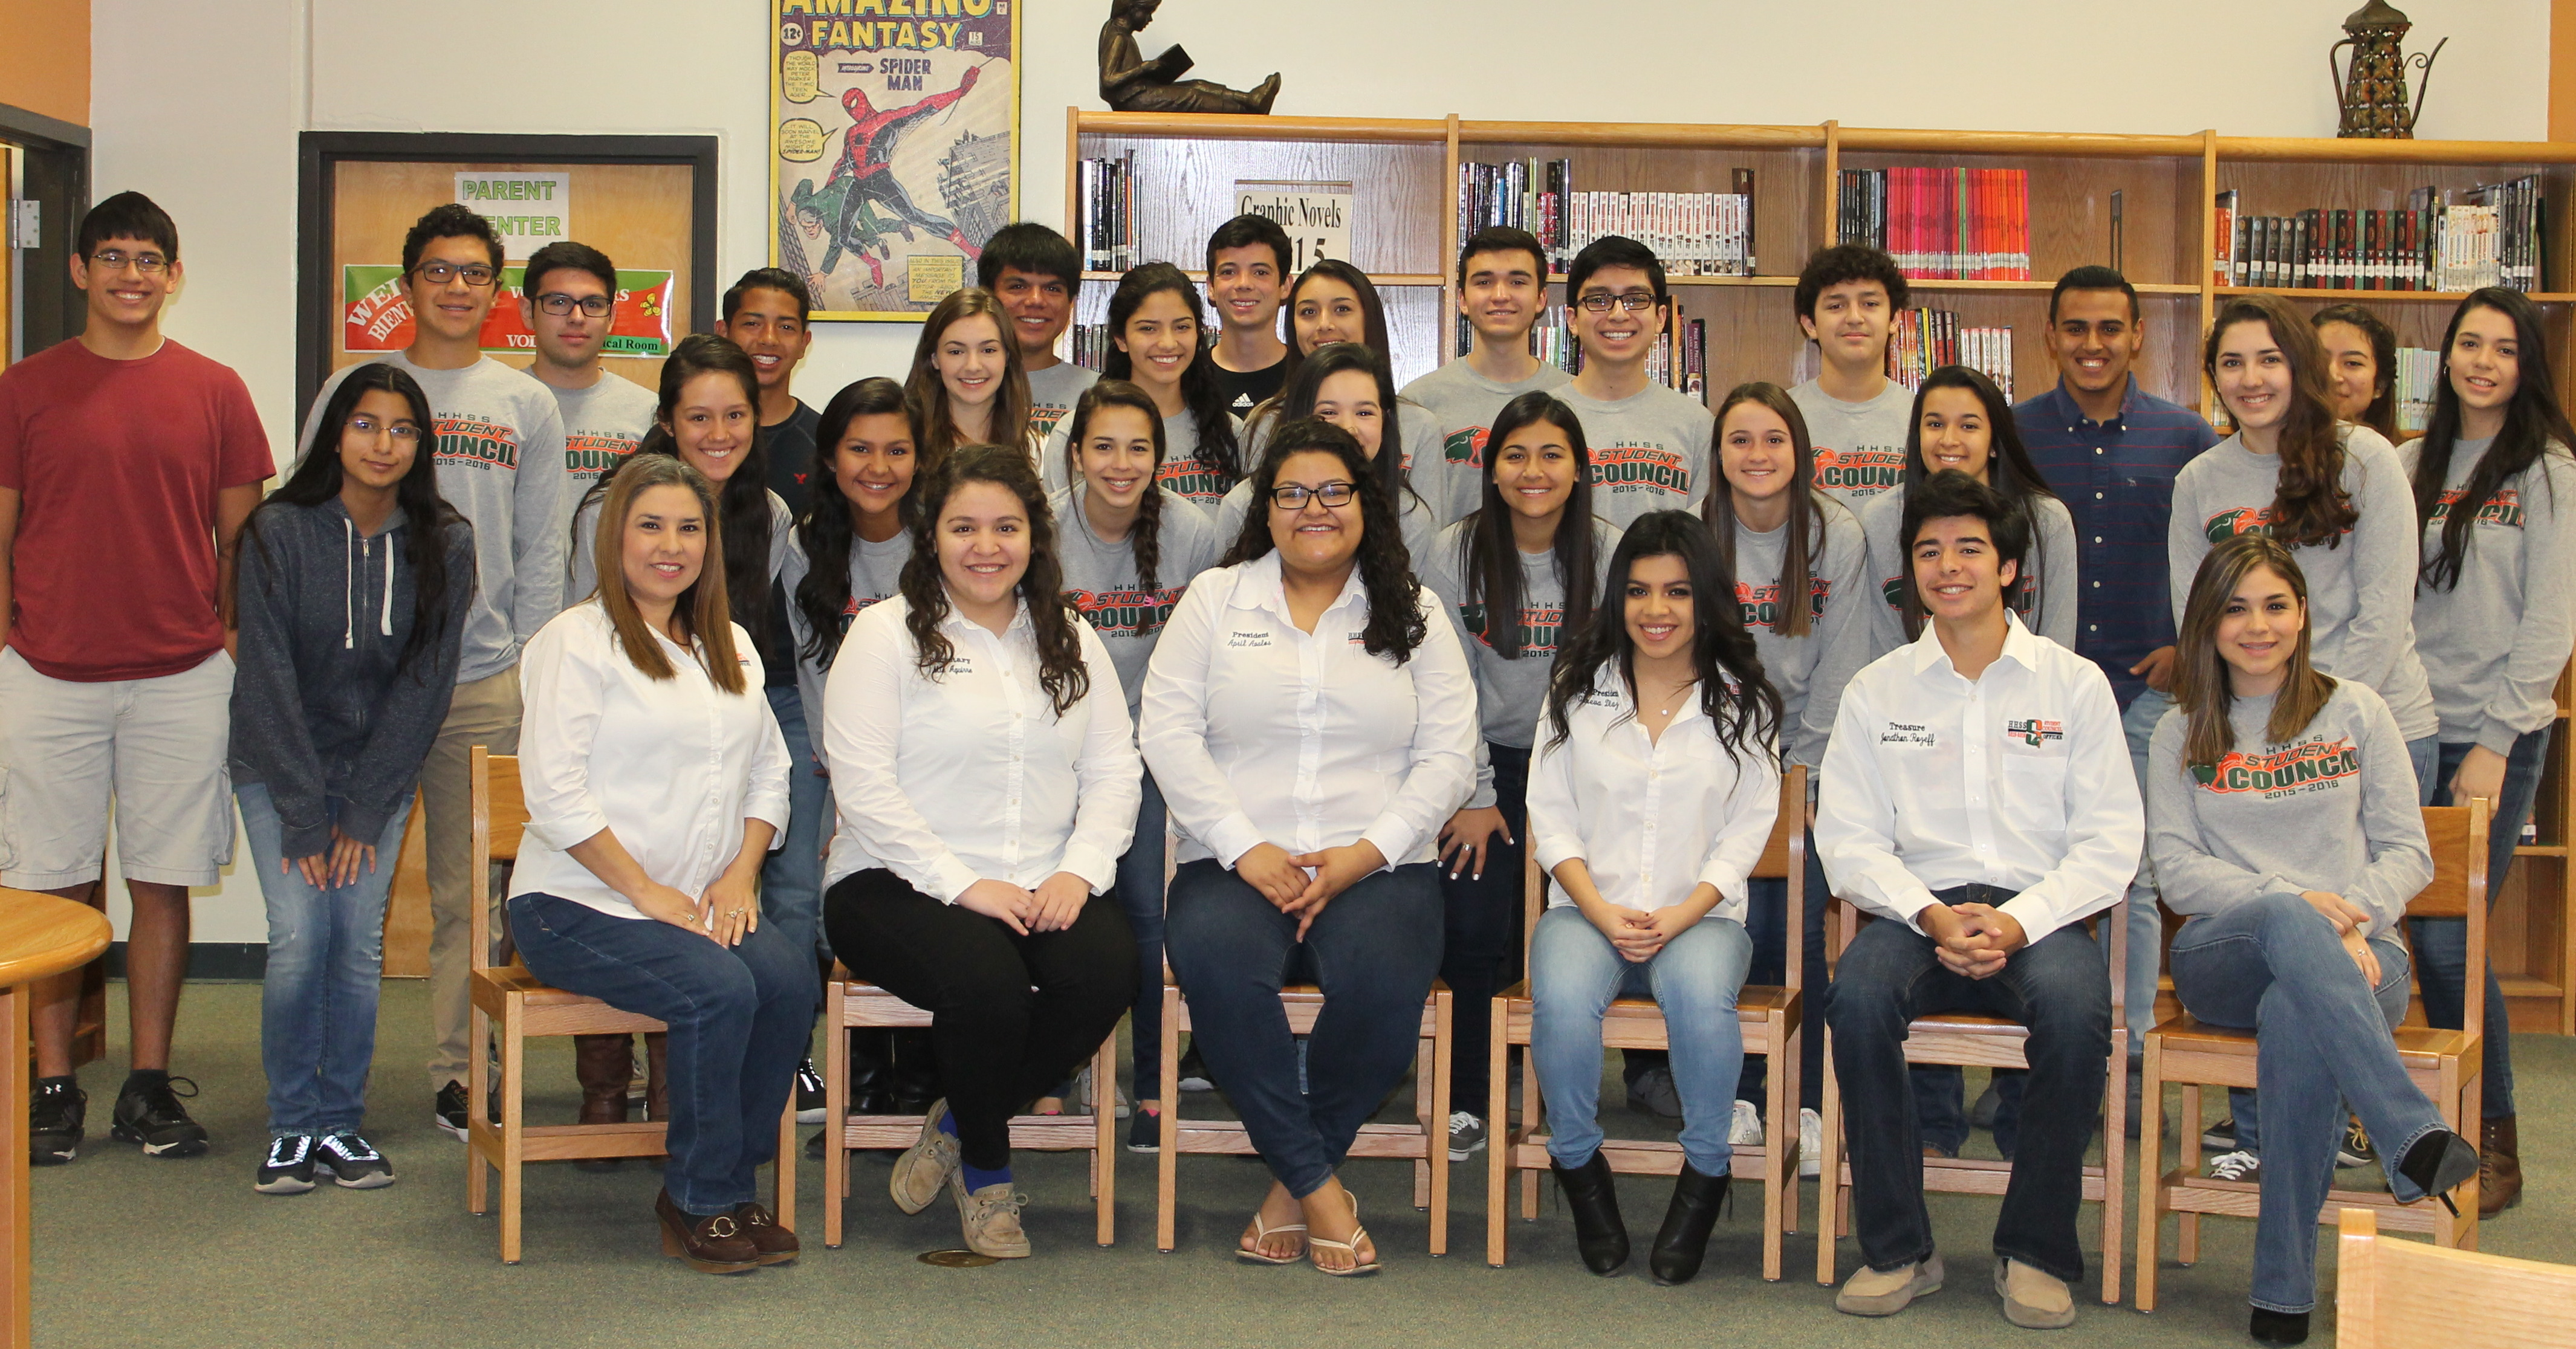 Harlingen South Student Council receives nationwide recognition from NASC